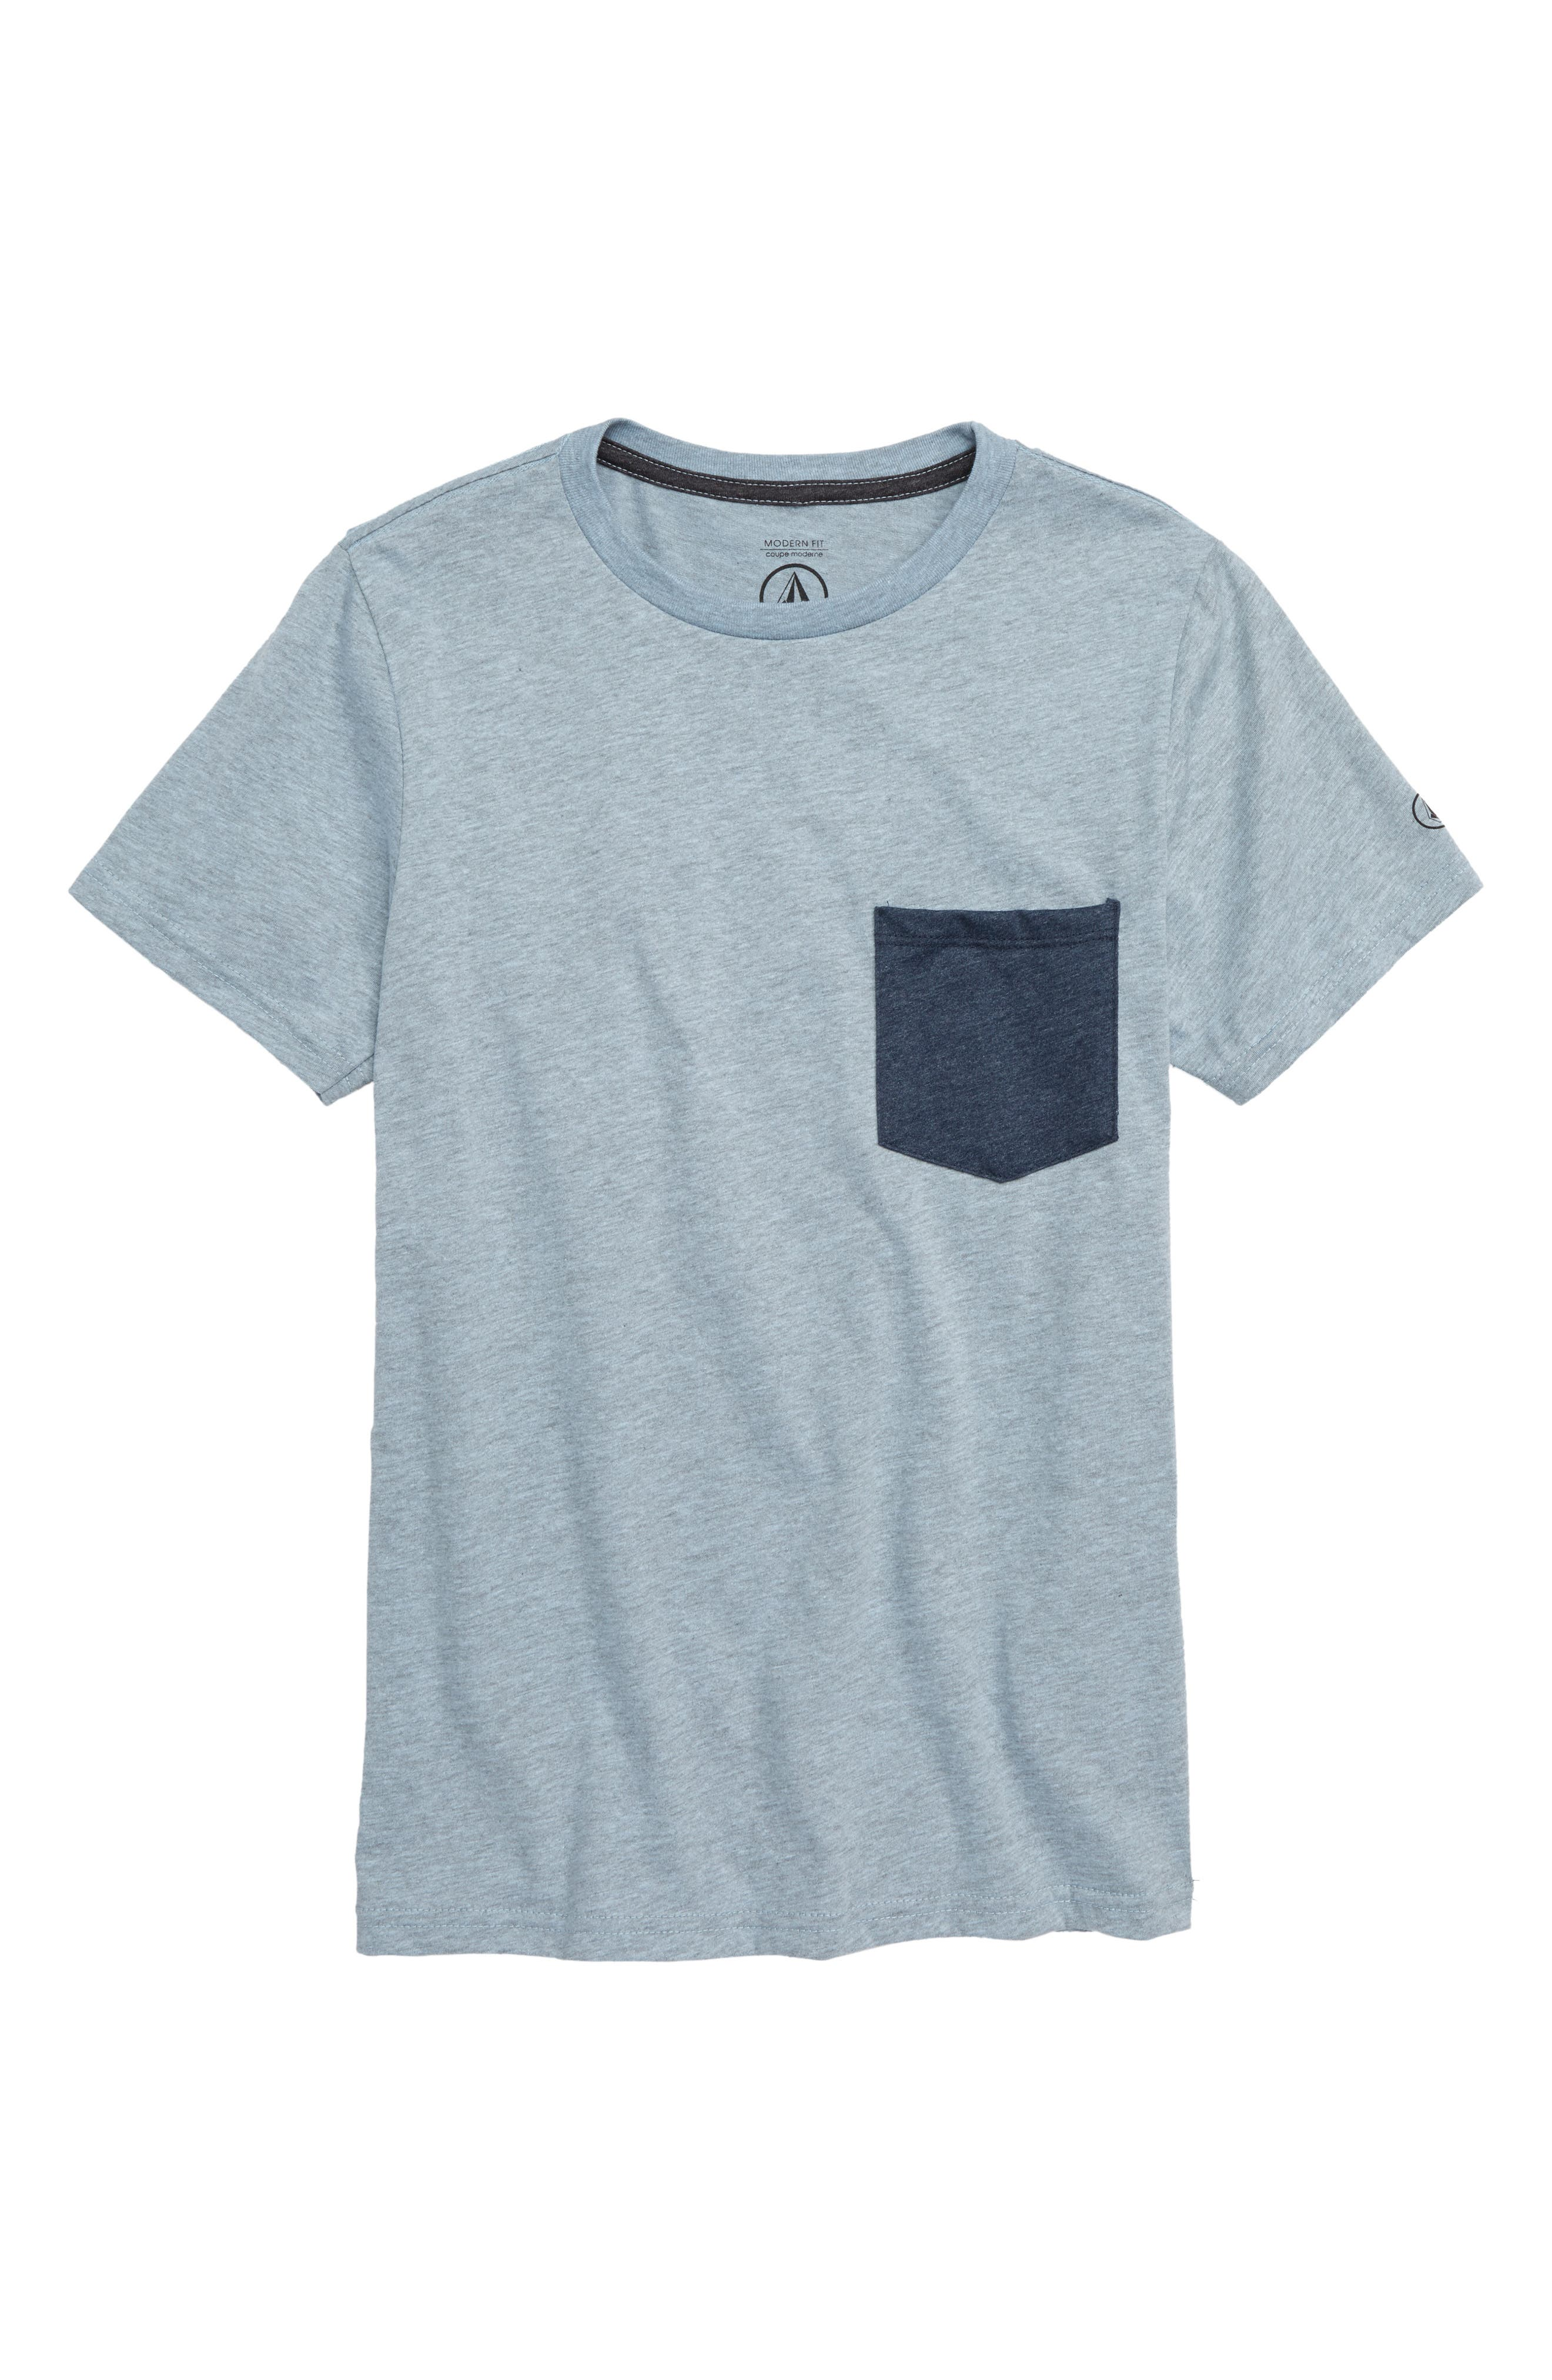 Heather Pocket T-Shirt,                         Main,                         color, 451